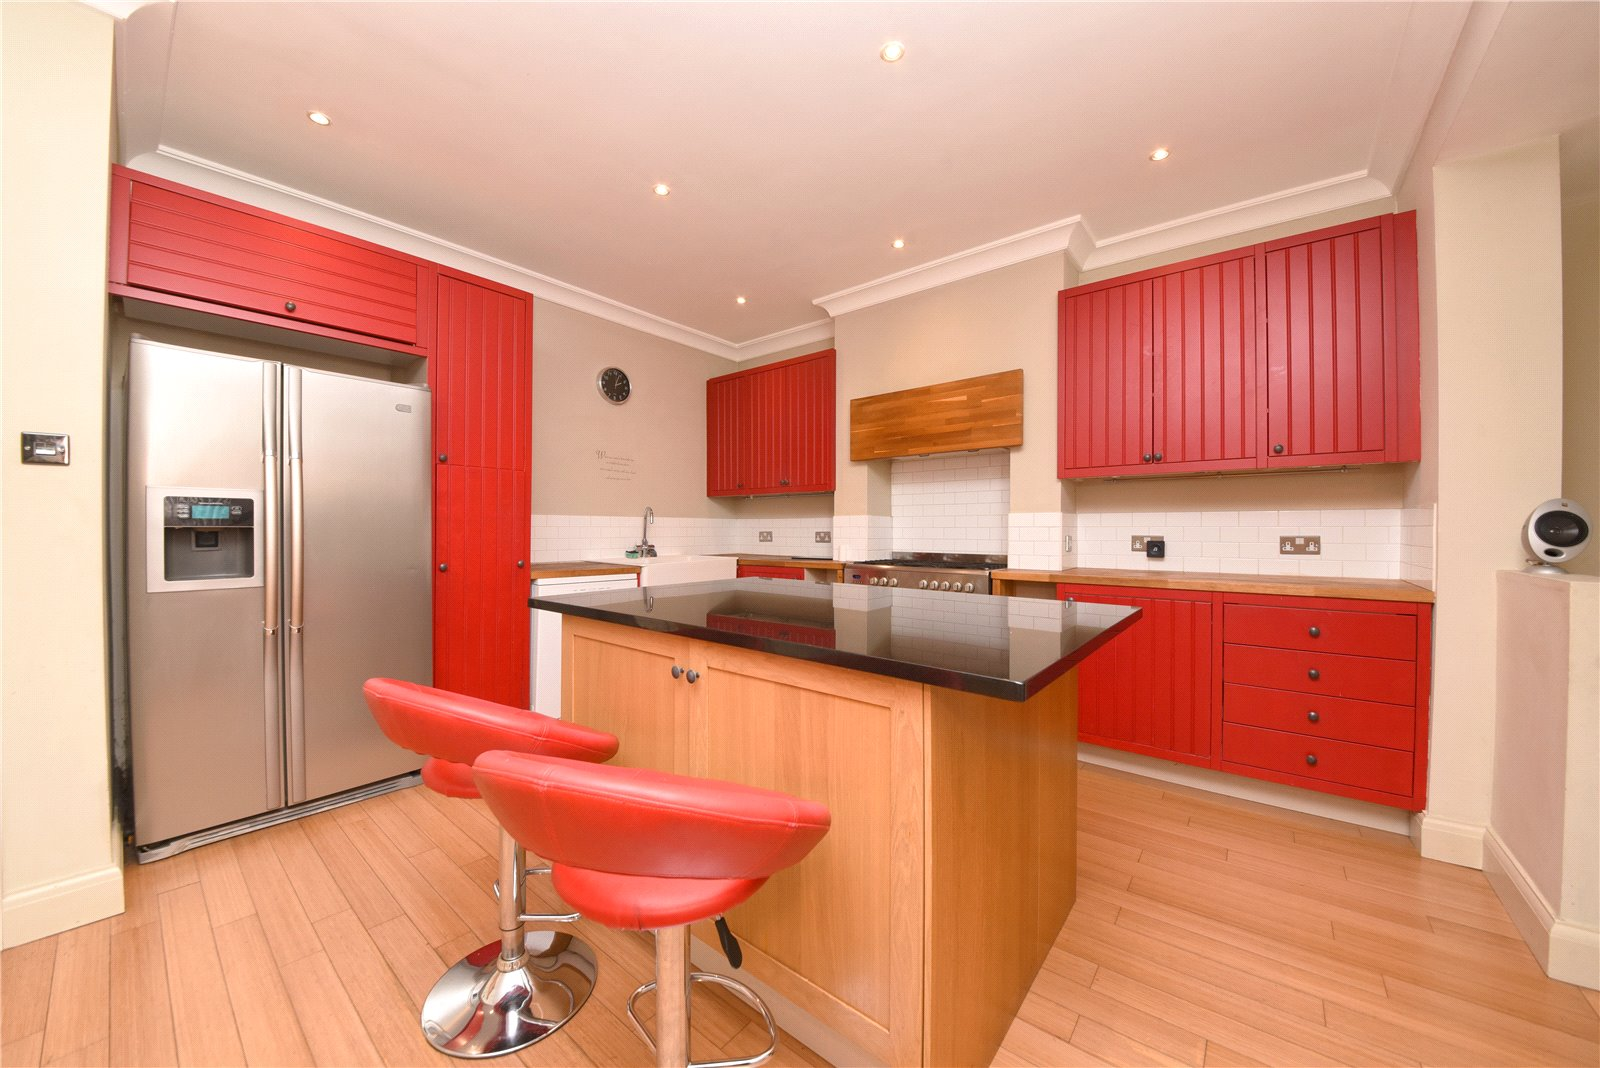 4 bed house to rent in Totteridge, N20 8HG, N20